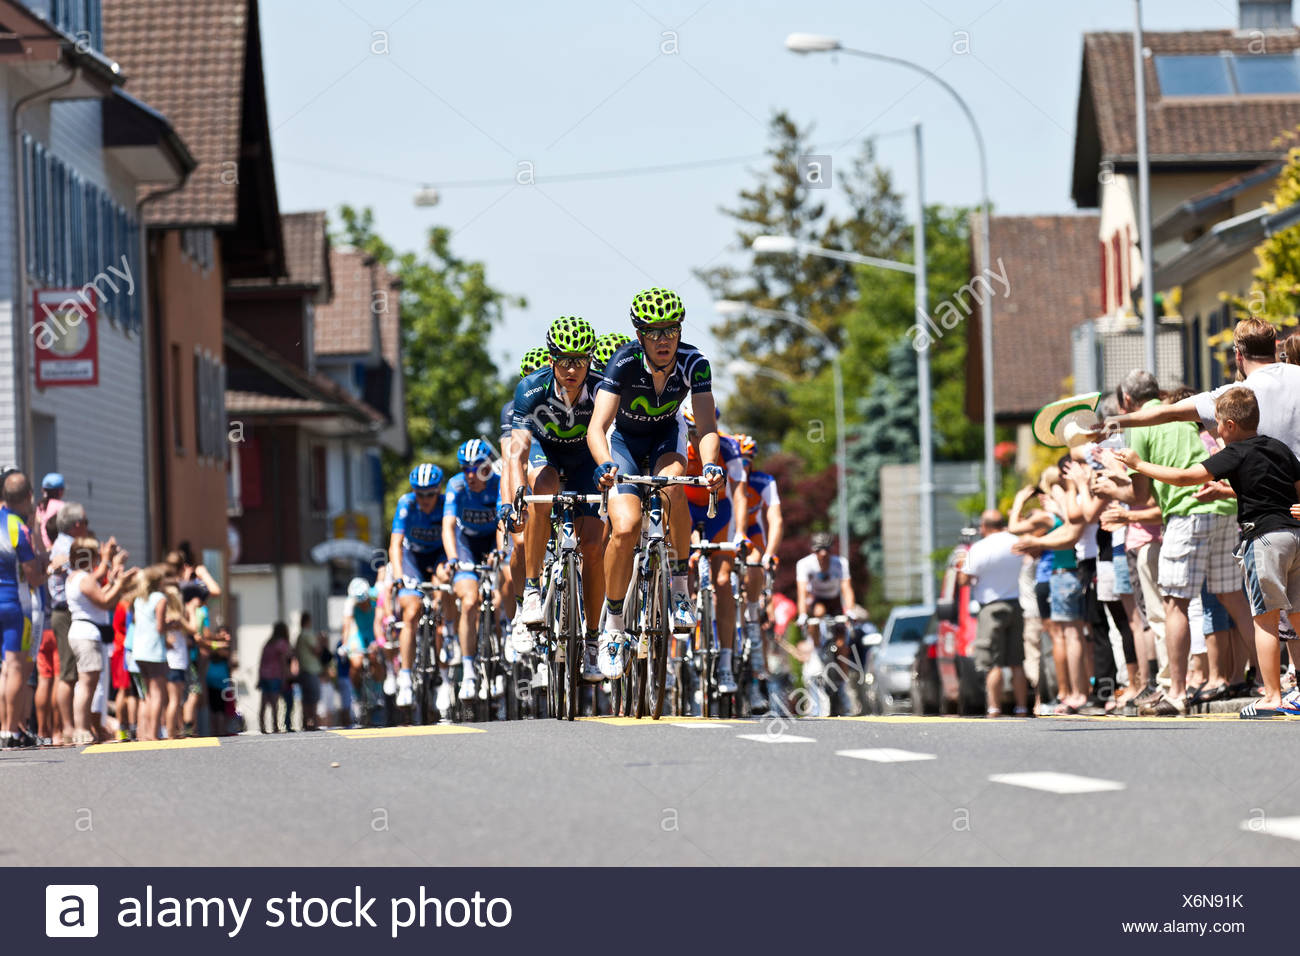 The head of the peloton in the final stage of the Tour de Suisse 2012 Naefels to Soerenberg, Switzerland, Europe - Stock Image